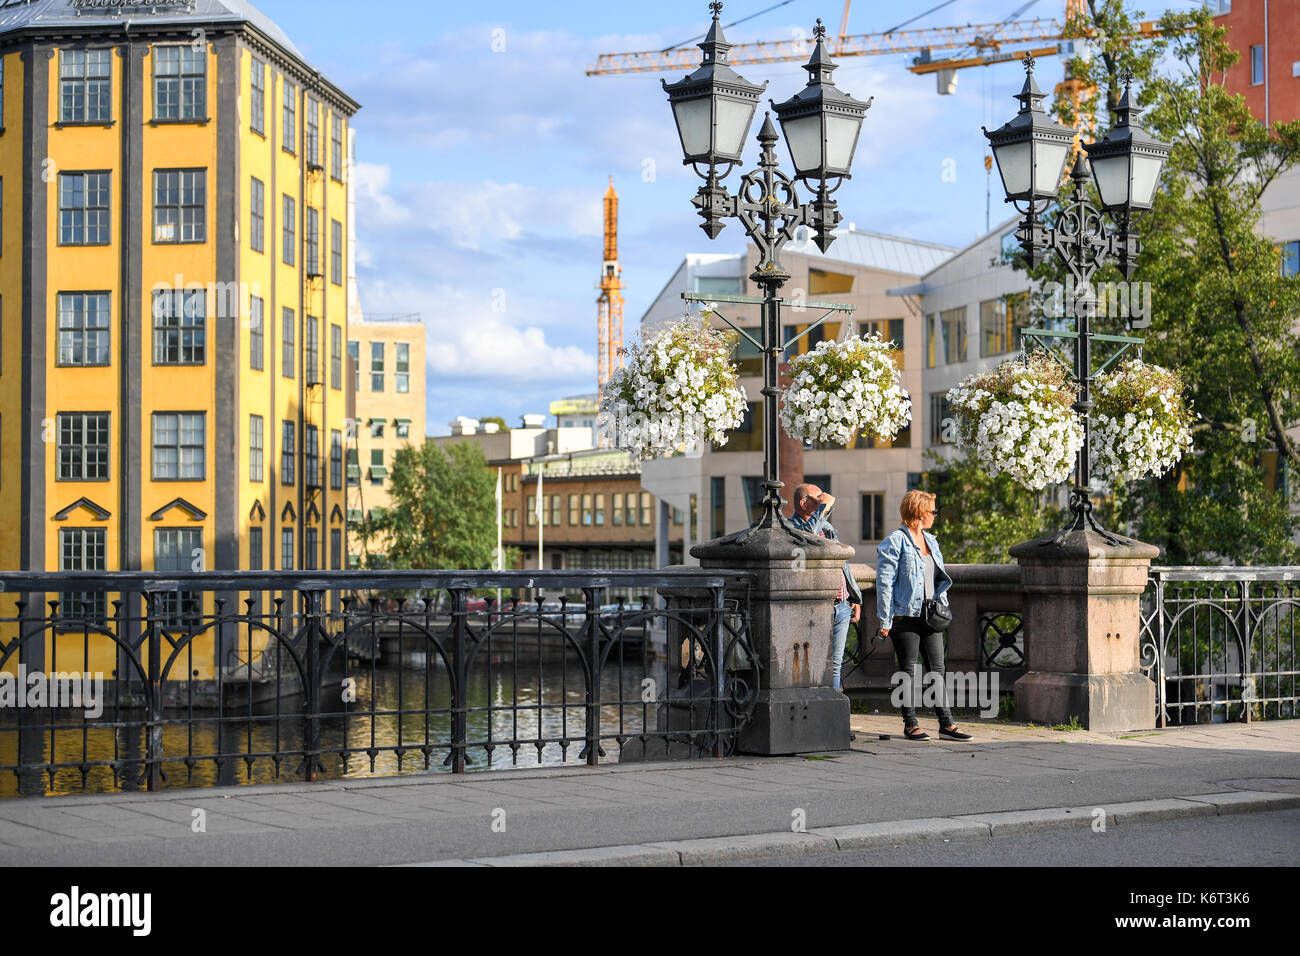 The Iron – an iconic building in the industrial landscape of Norrkoping celebrates its 100 year-anniversary in 2017. - Stock Image